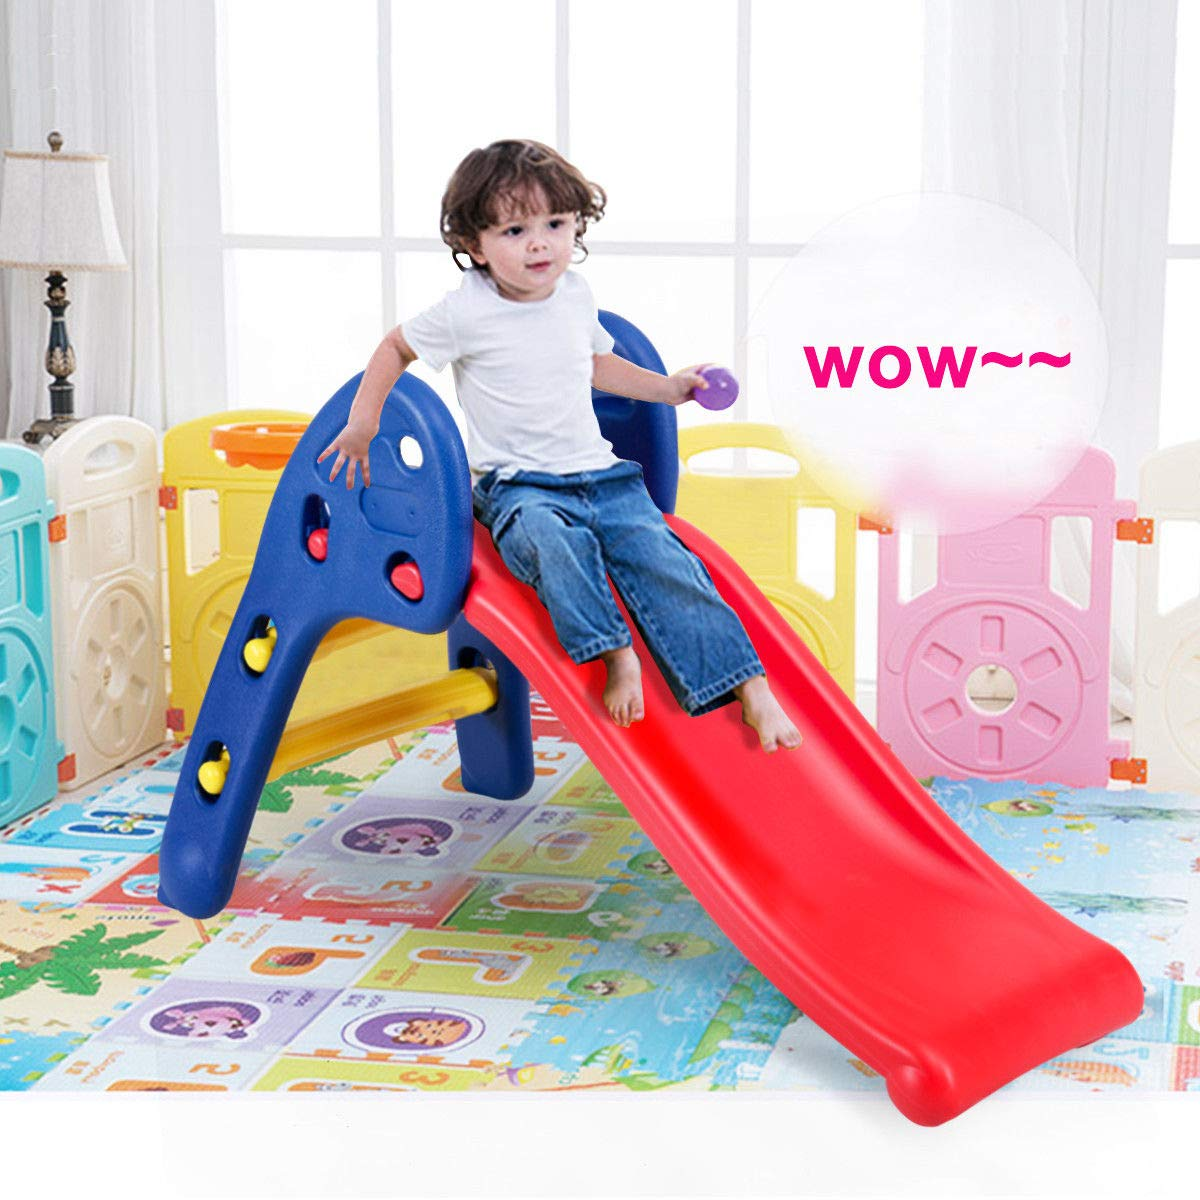 Heavens Tvcz Slide Plastic Folding Kids Fun Toy Up-Down Children Play Fun Step Rails Toddler Big High Side Portable Outdoor Indoor by Heavens Tvcz (Image #2)